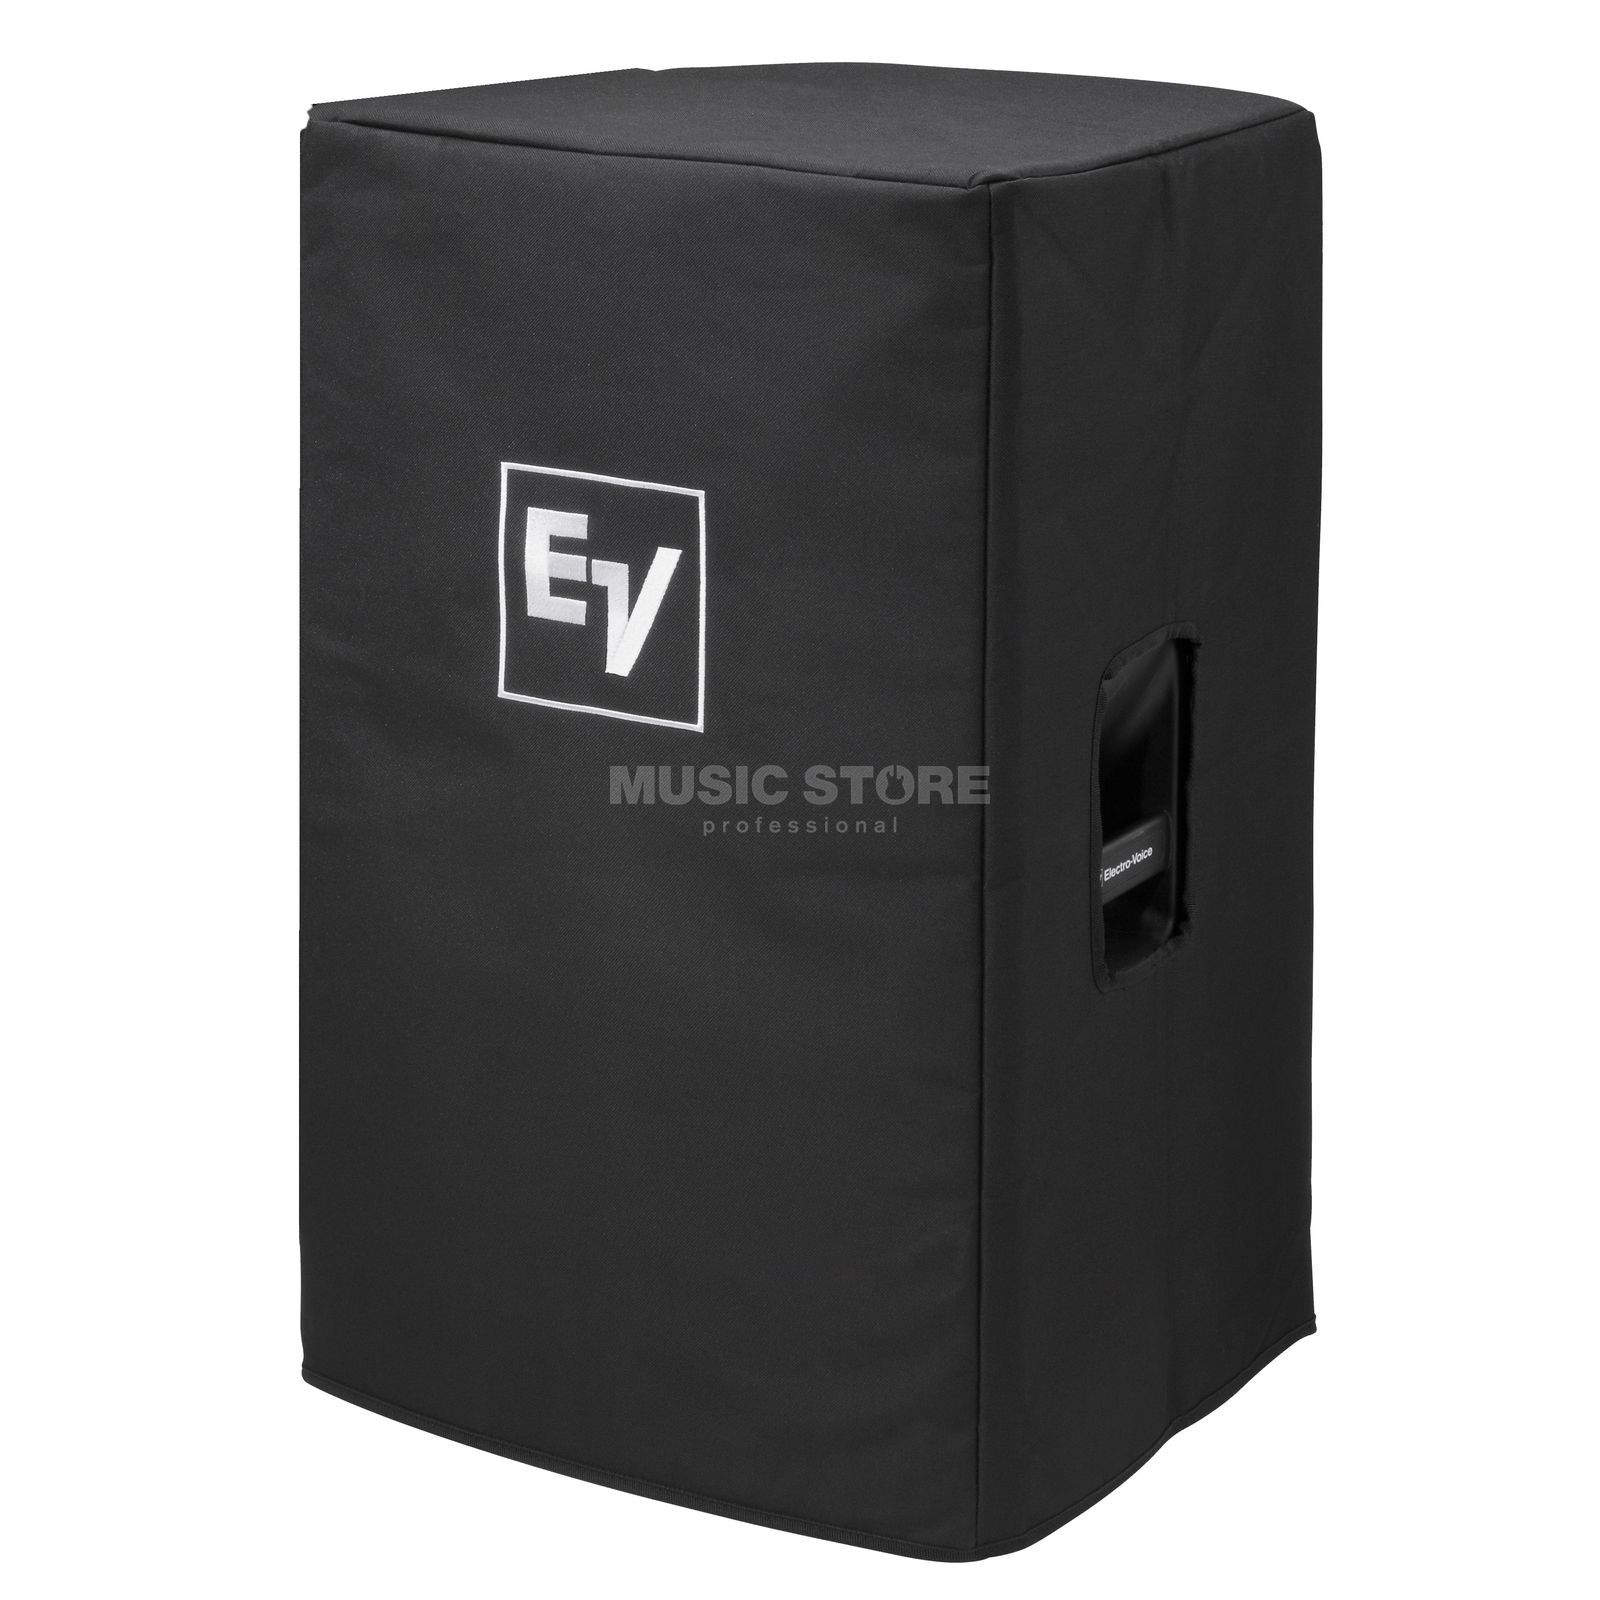 Electro Voice ETX-15P-CVR Cover for ETX-15P Product Image